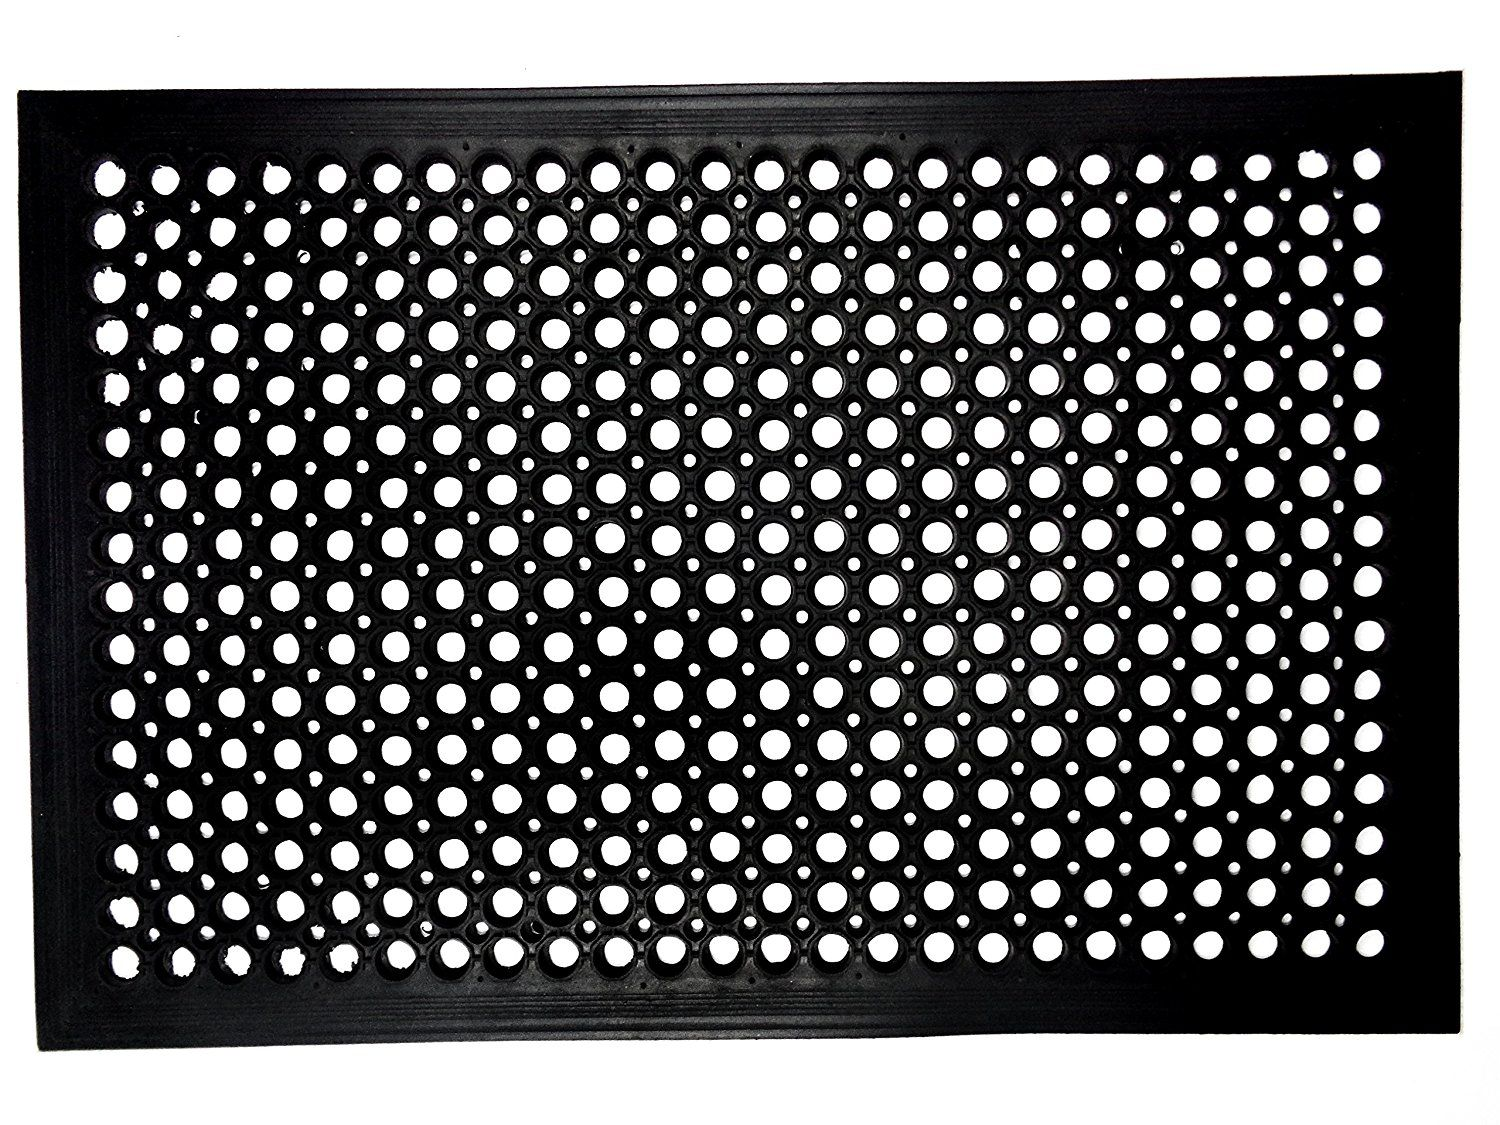 industrial dp sanitop mats anti drainage for floor black thickness notrax matting com x fatigue amazon width mat areas wet rubber length